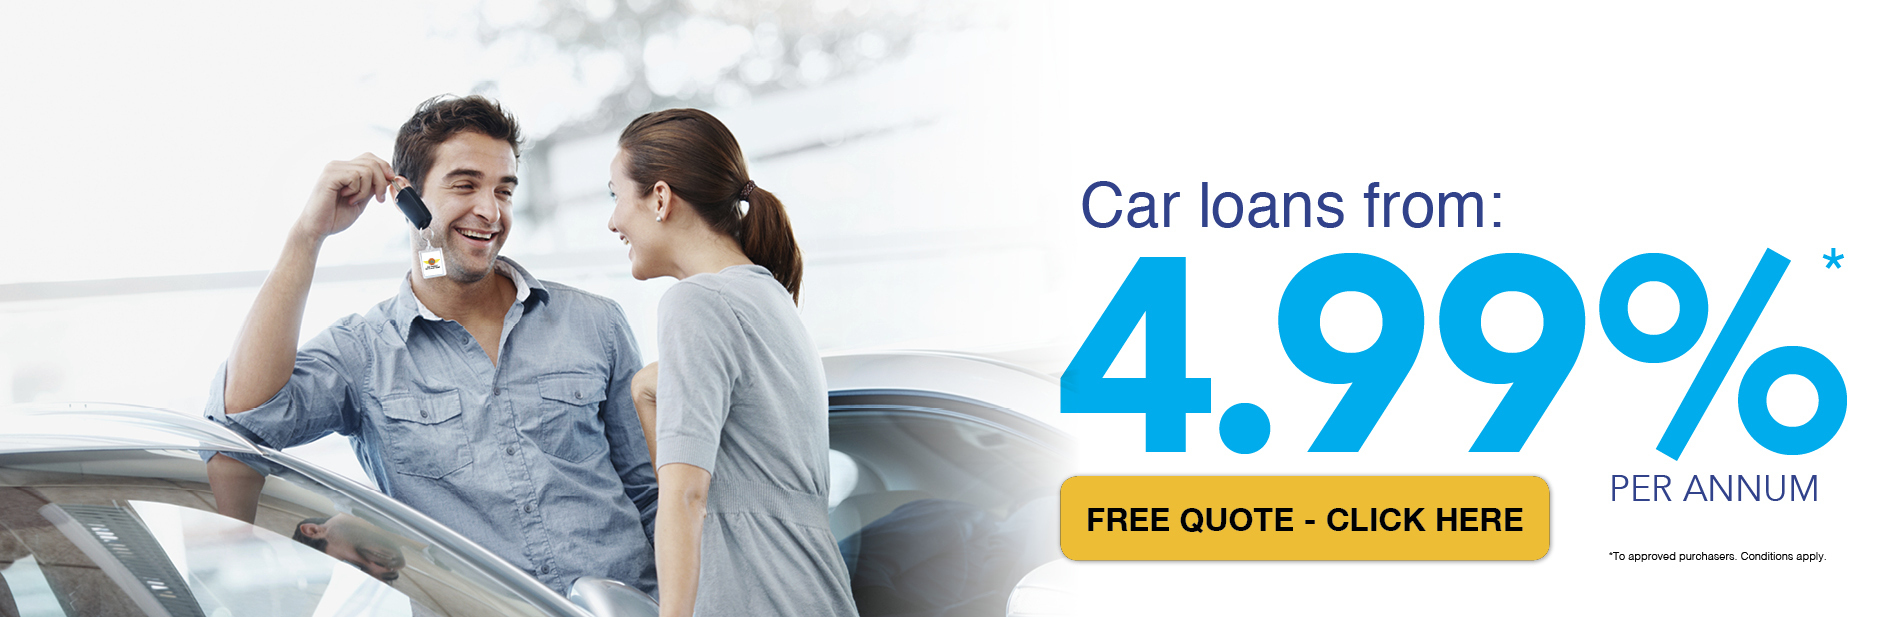 Free Finance Quote - Apply, Approved and Drive Away